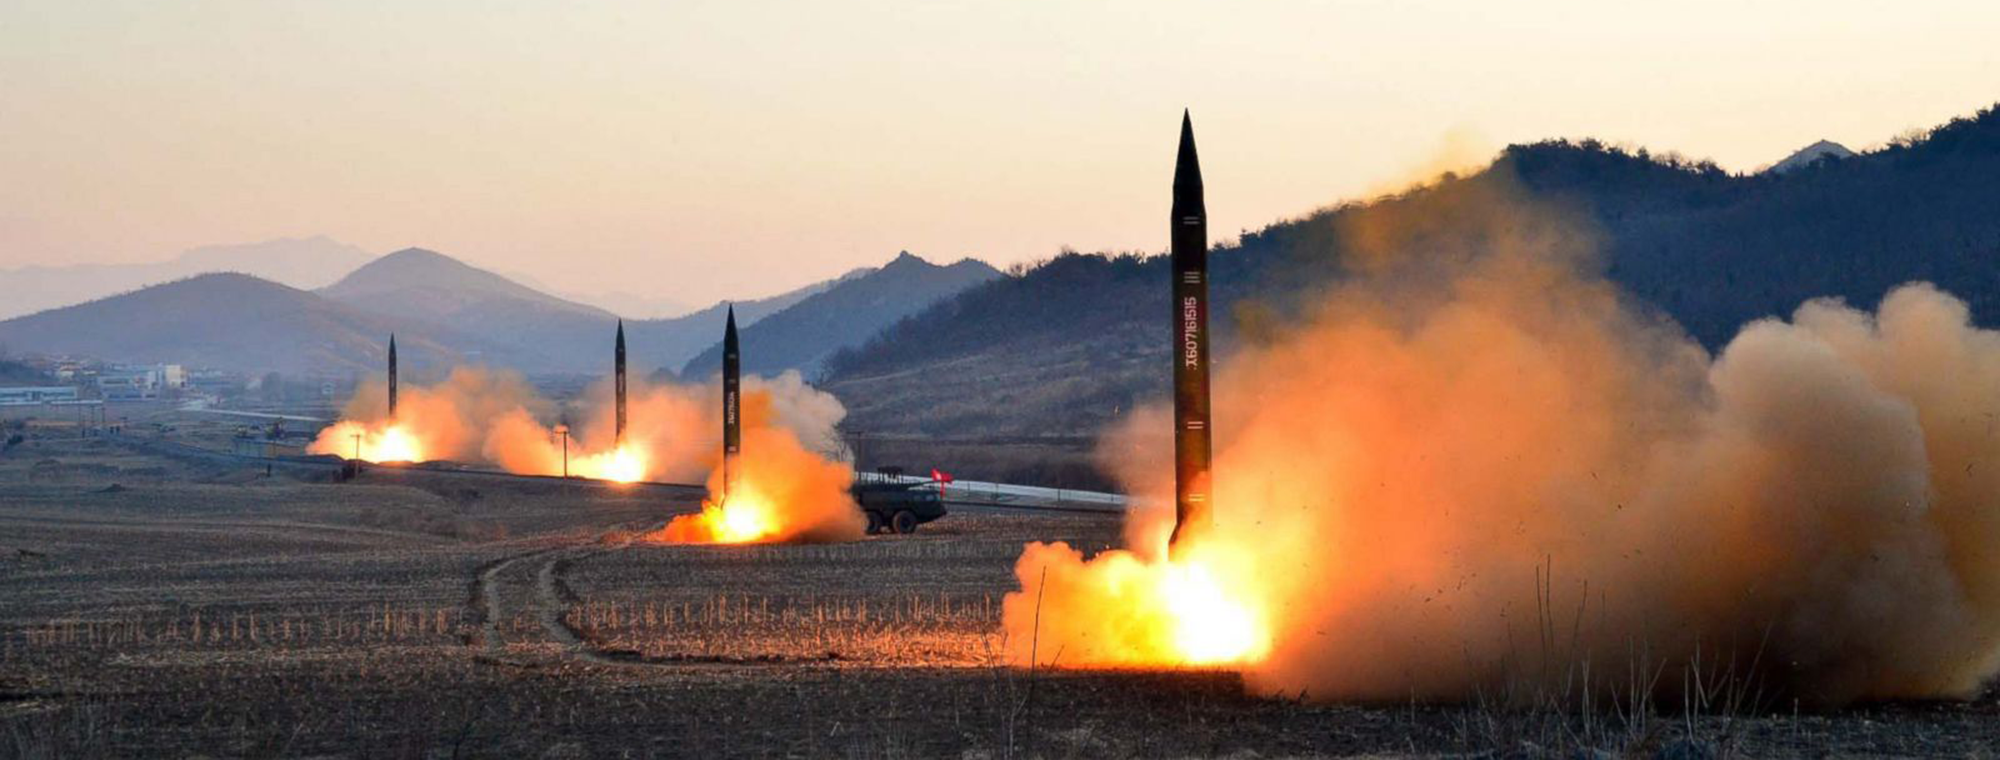 North Korea missile launch, undated, KCNA